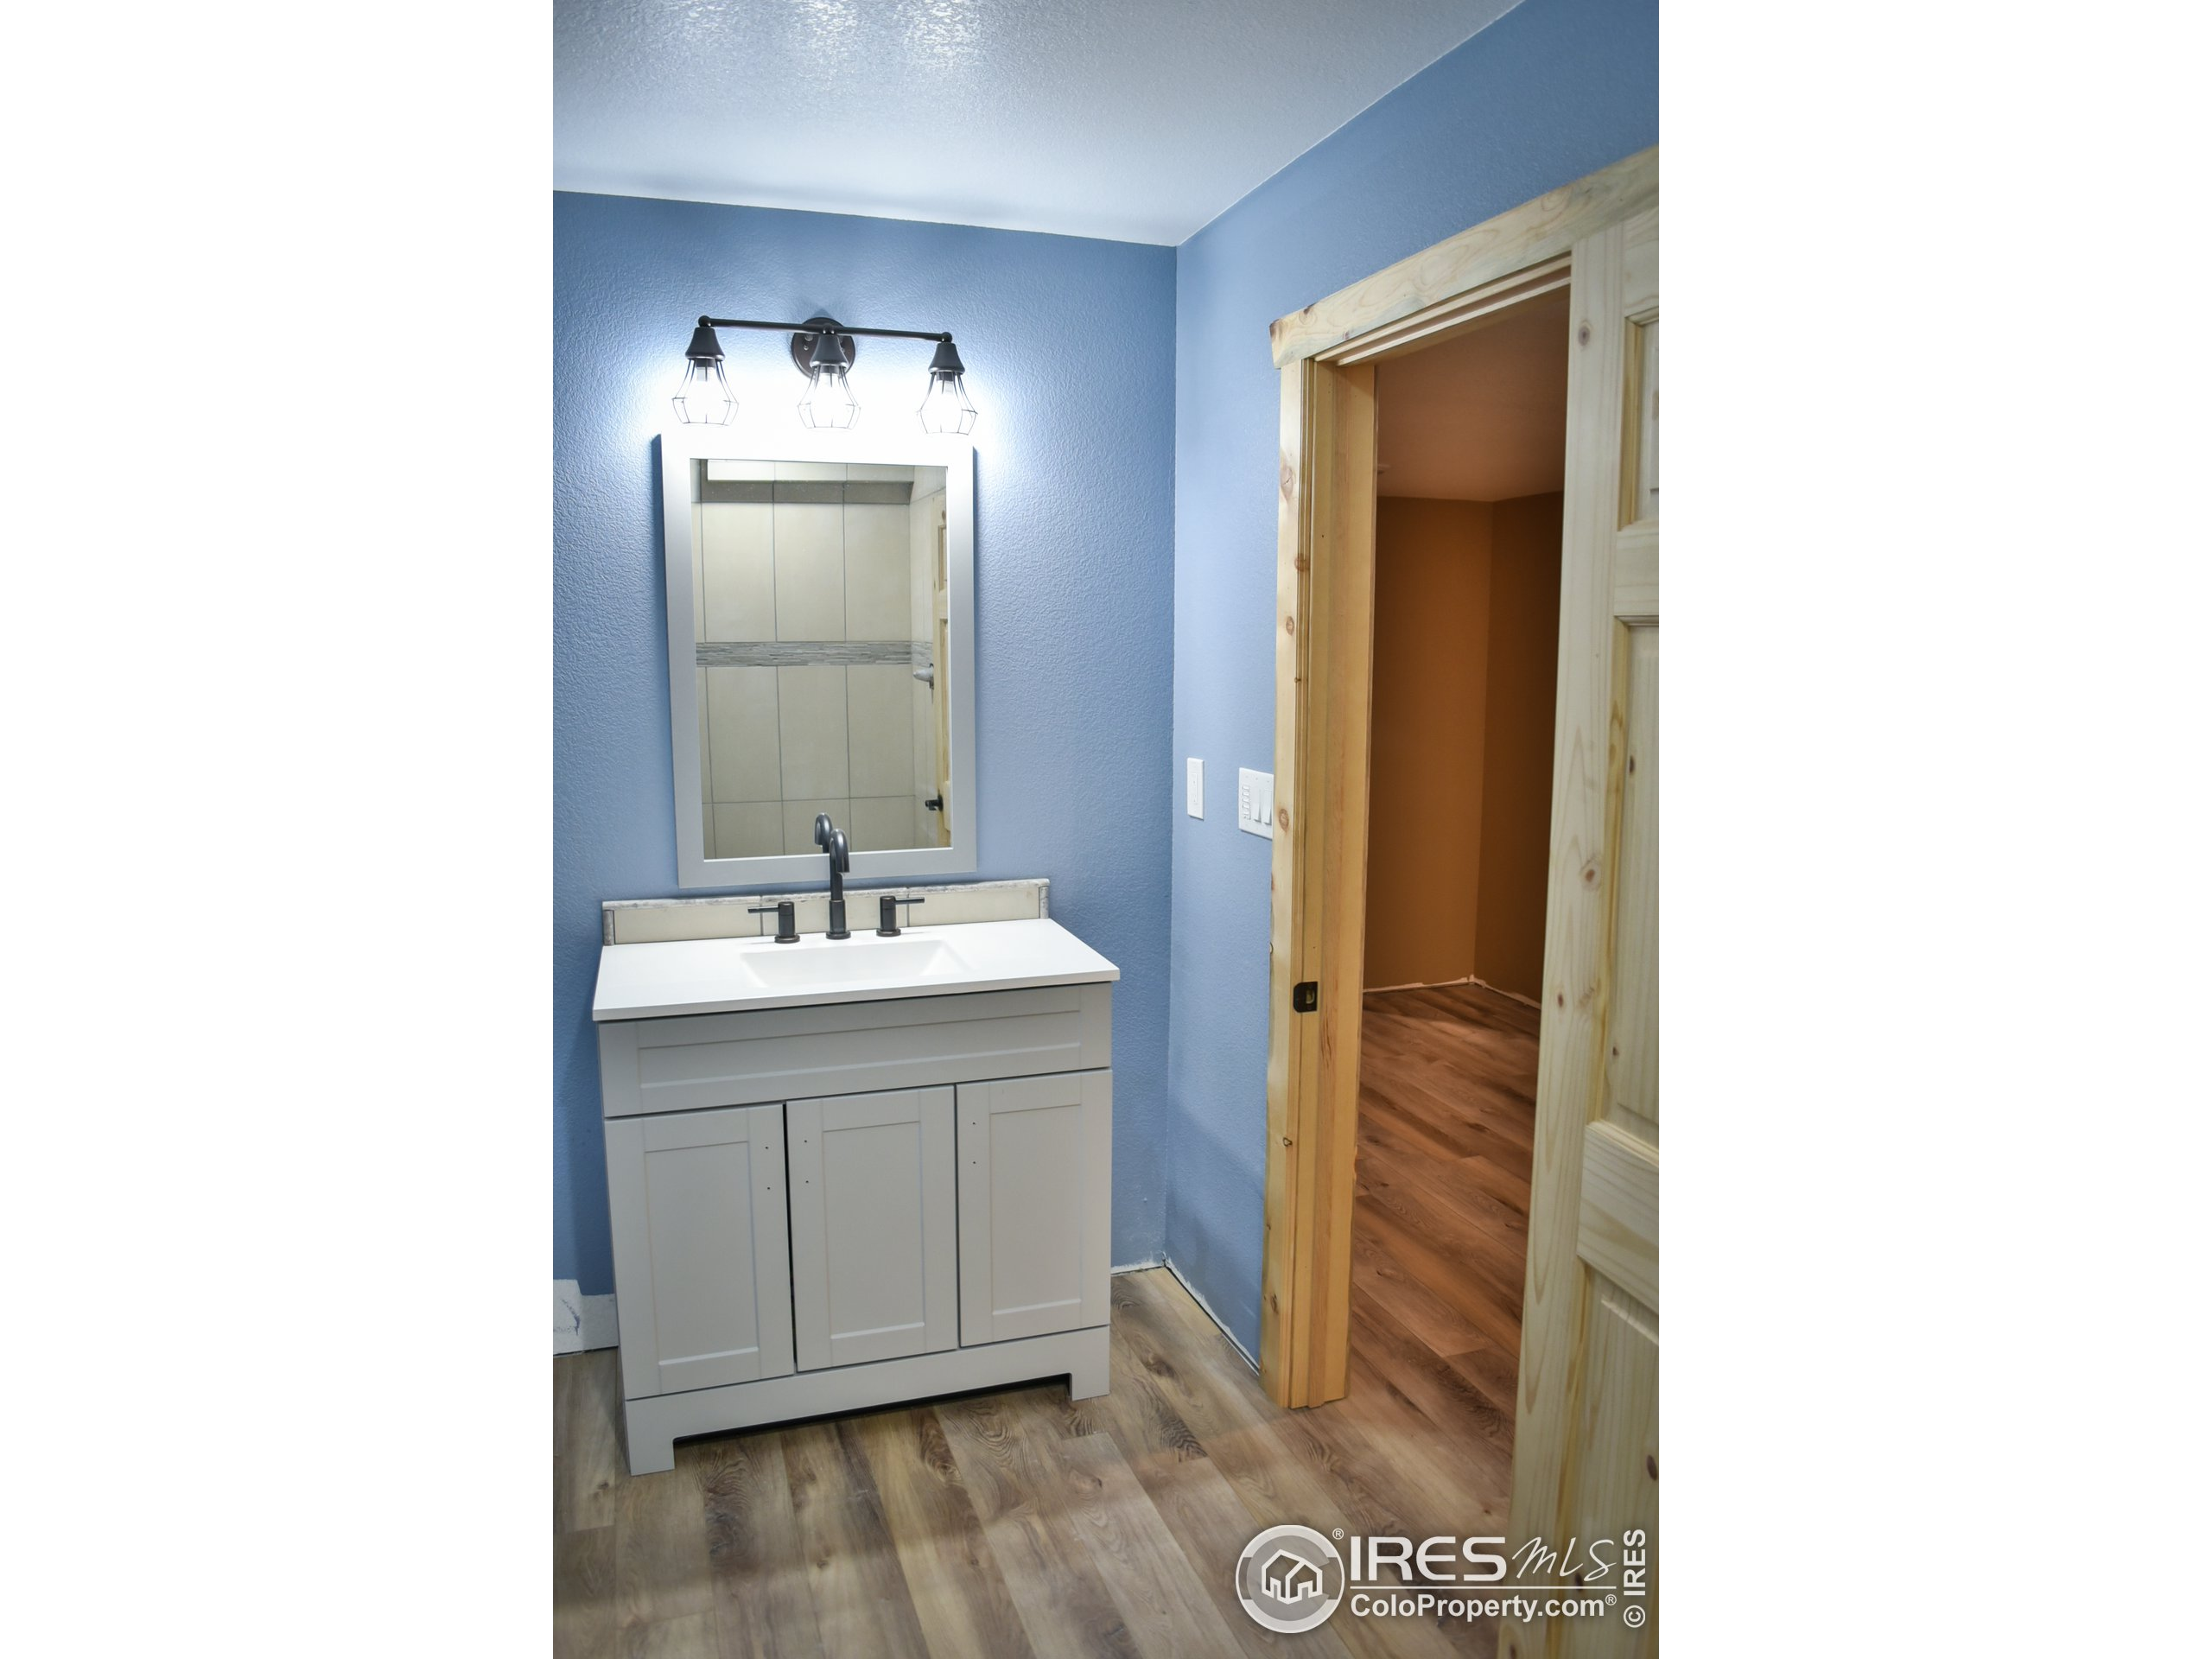 Basement laundry area, with view to 3/4 bath and 2 storage/office areas.